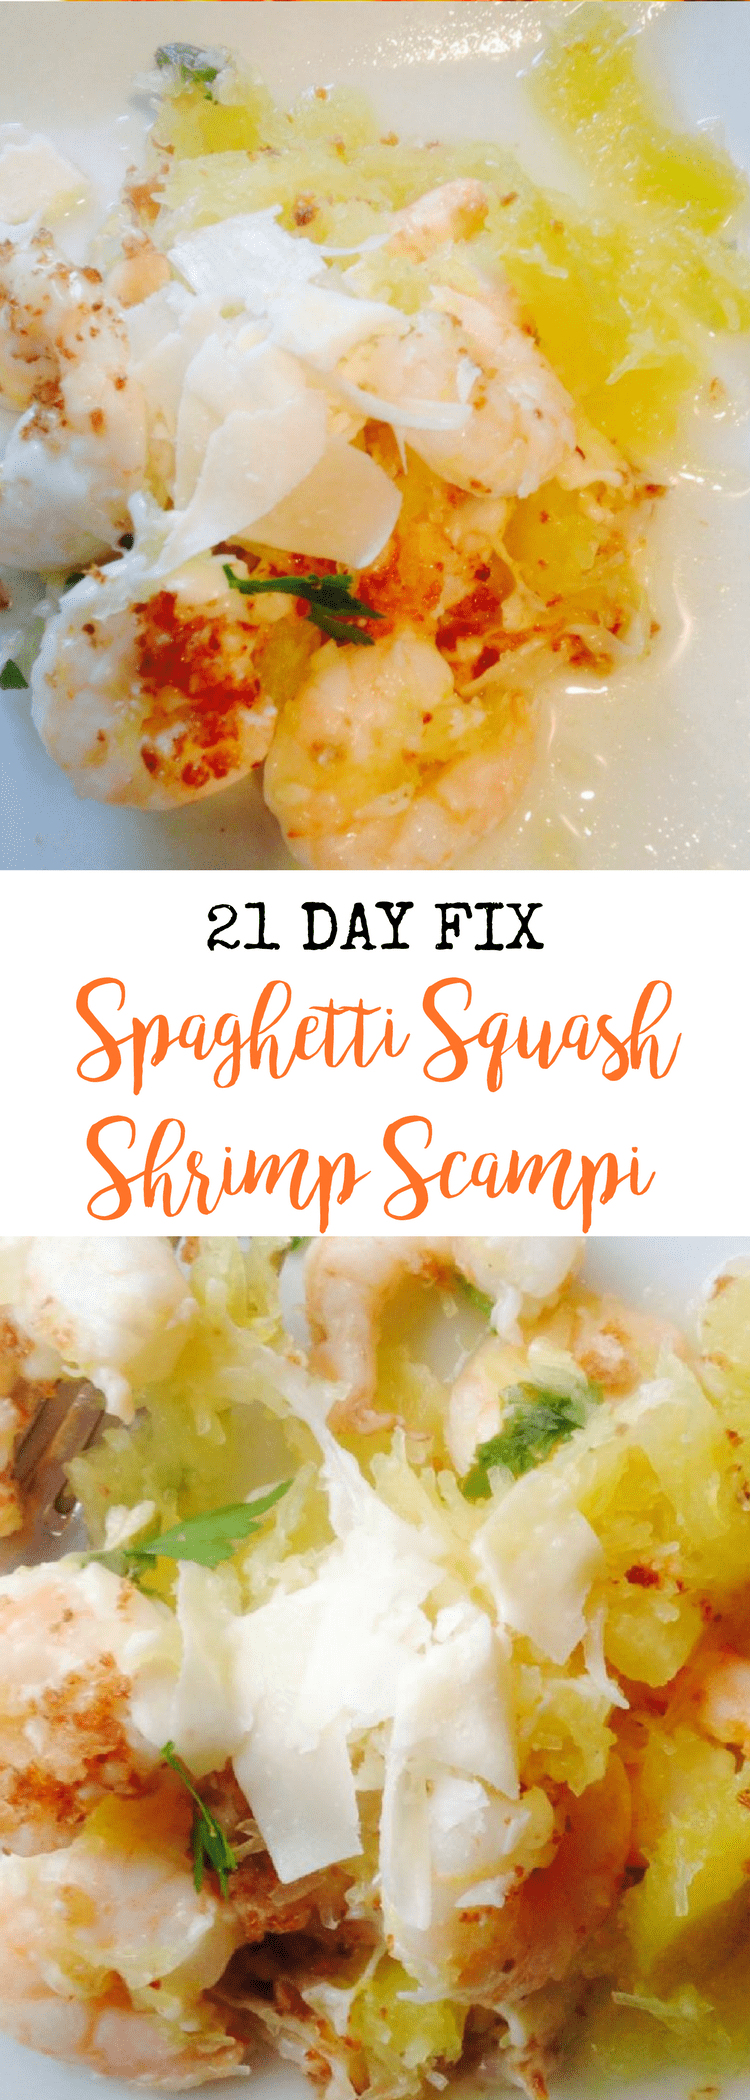 Spaghetti Squash Shrimp Scampi {21 Day Fix} | Confessions of a Fit Foodie